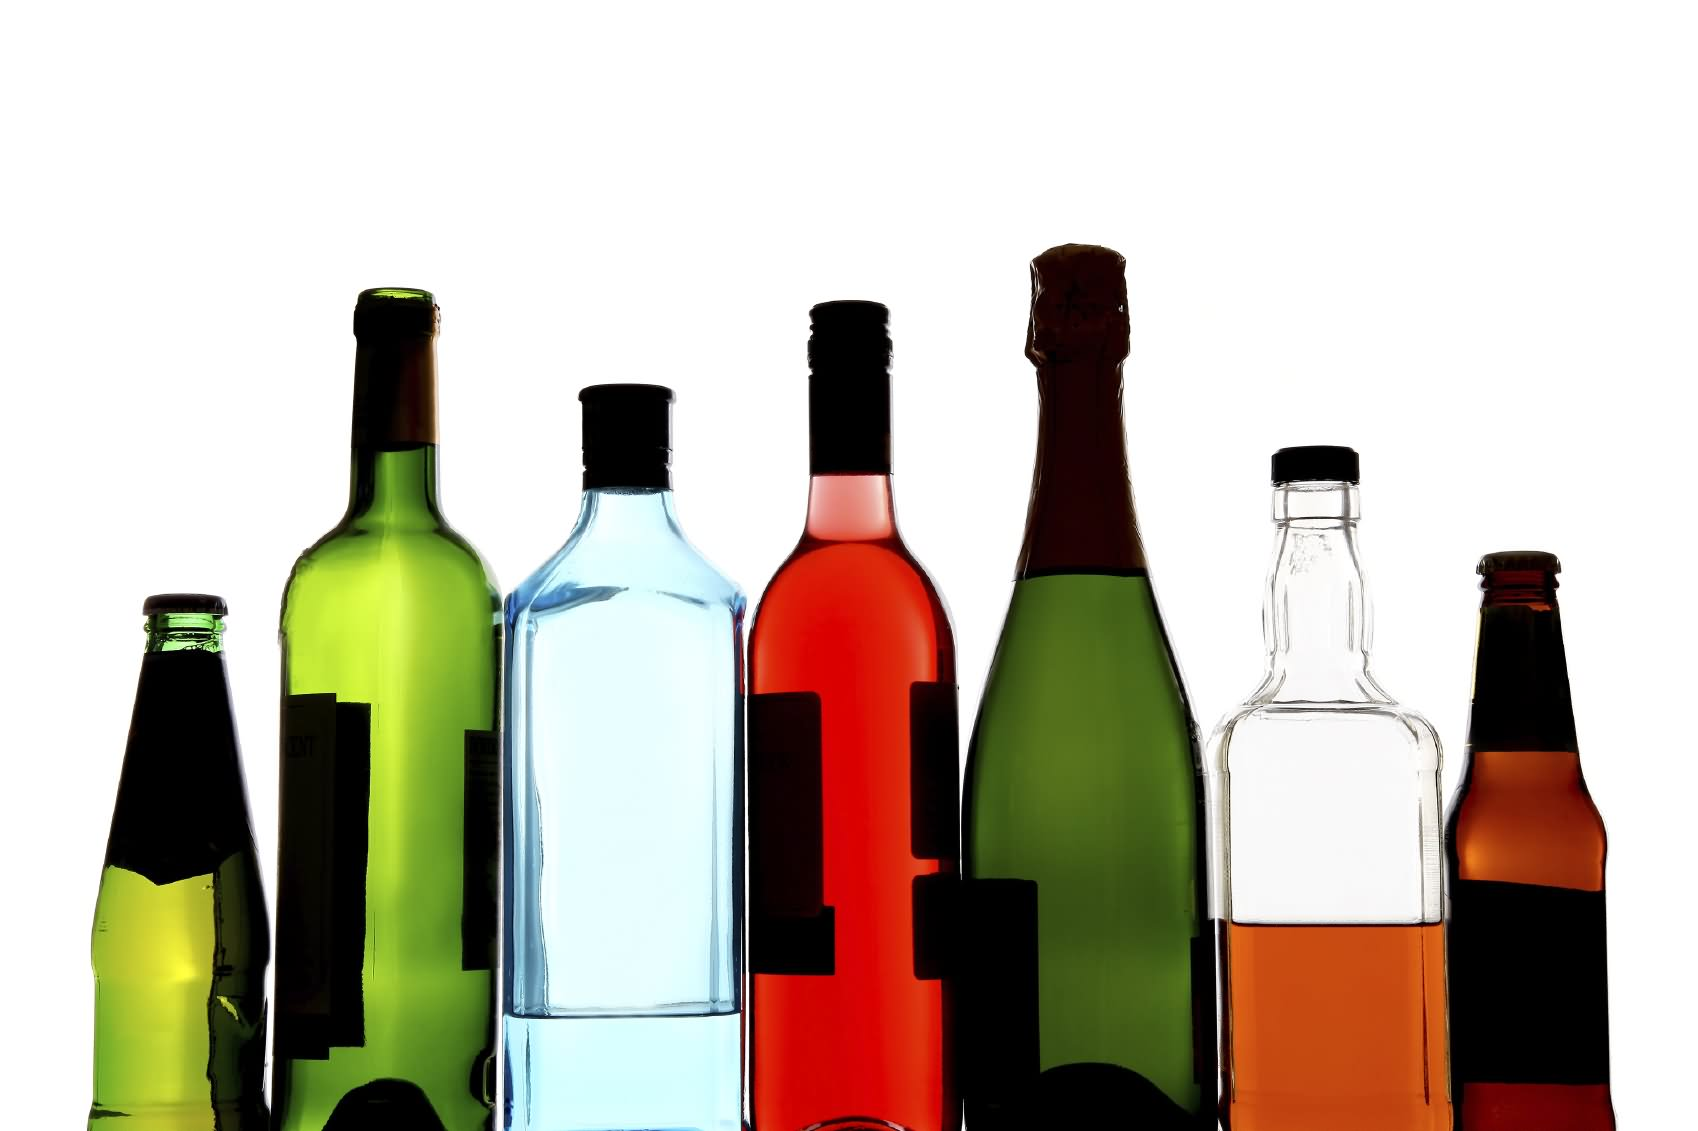 Alcohol bottle free clipart png free library Alcohol bottle clipart no background - Clip Art Library png free library